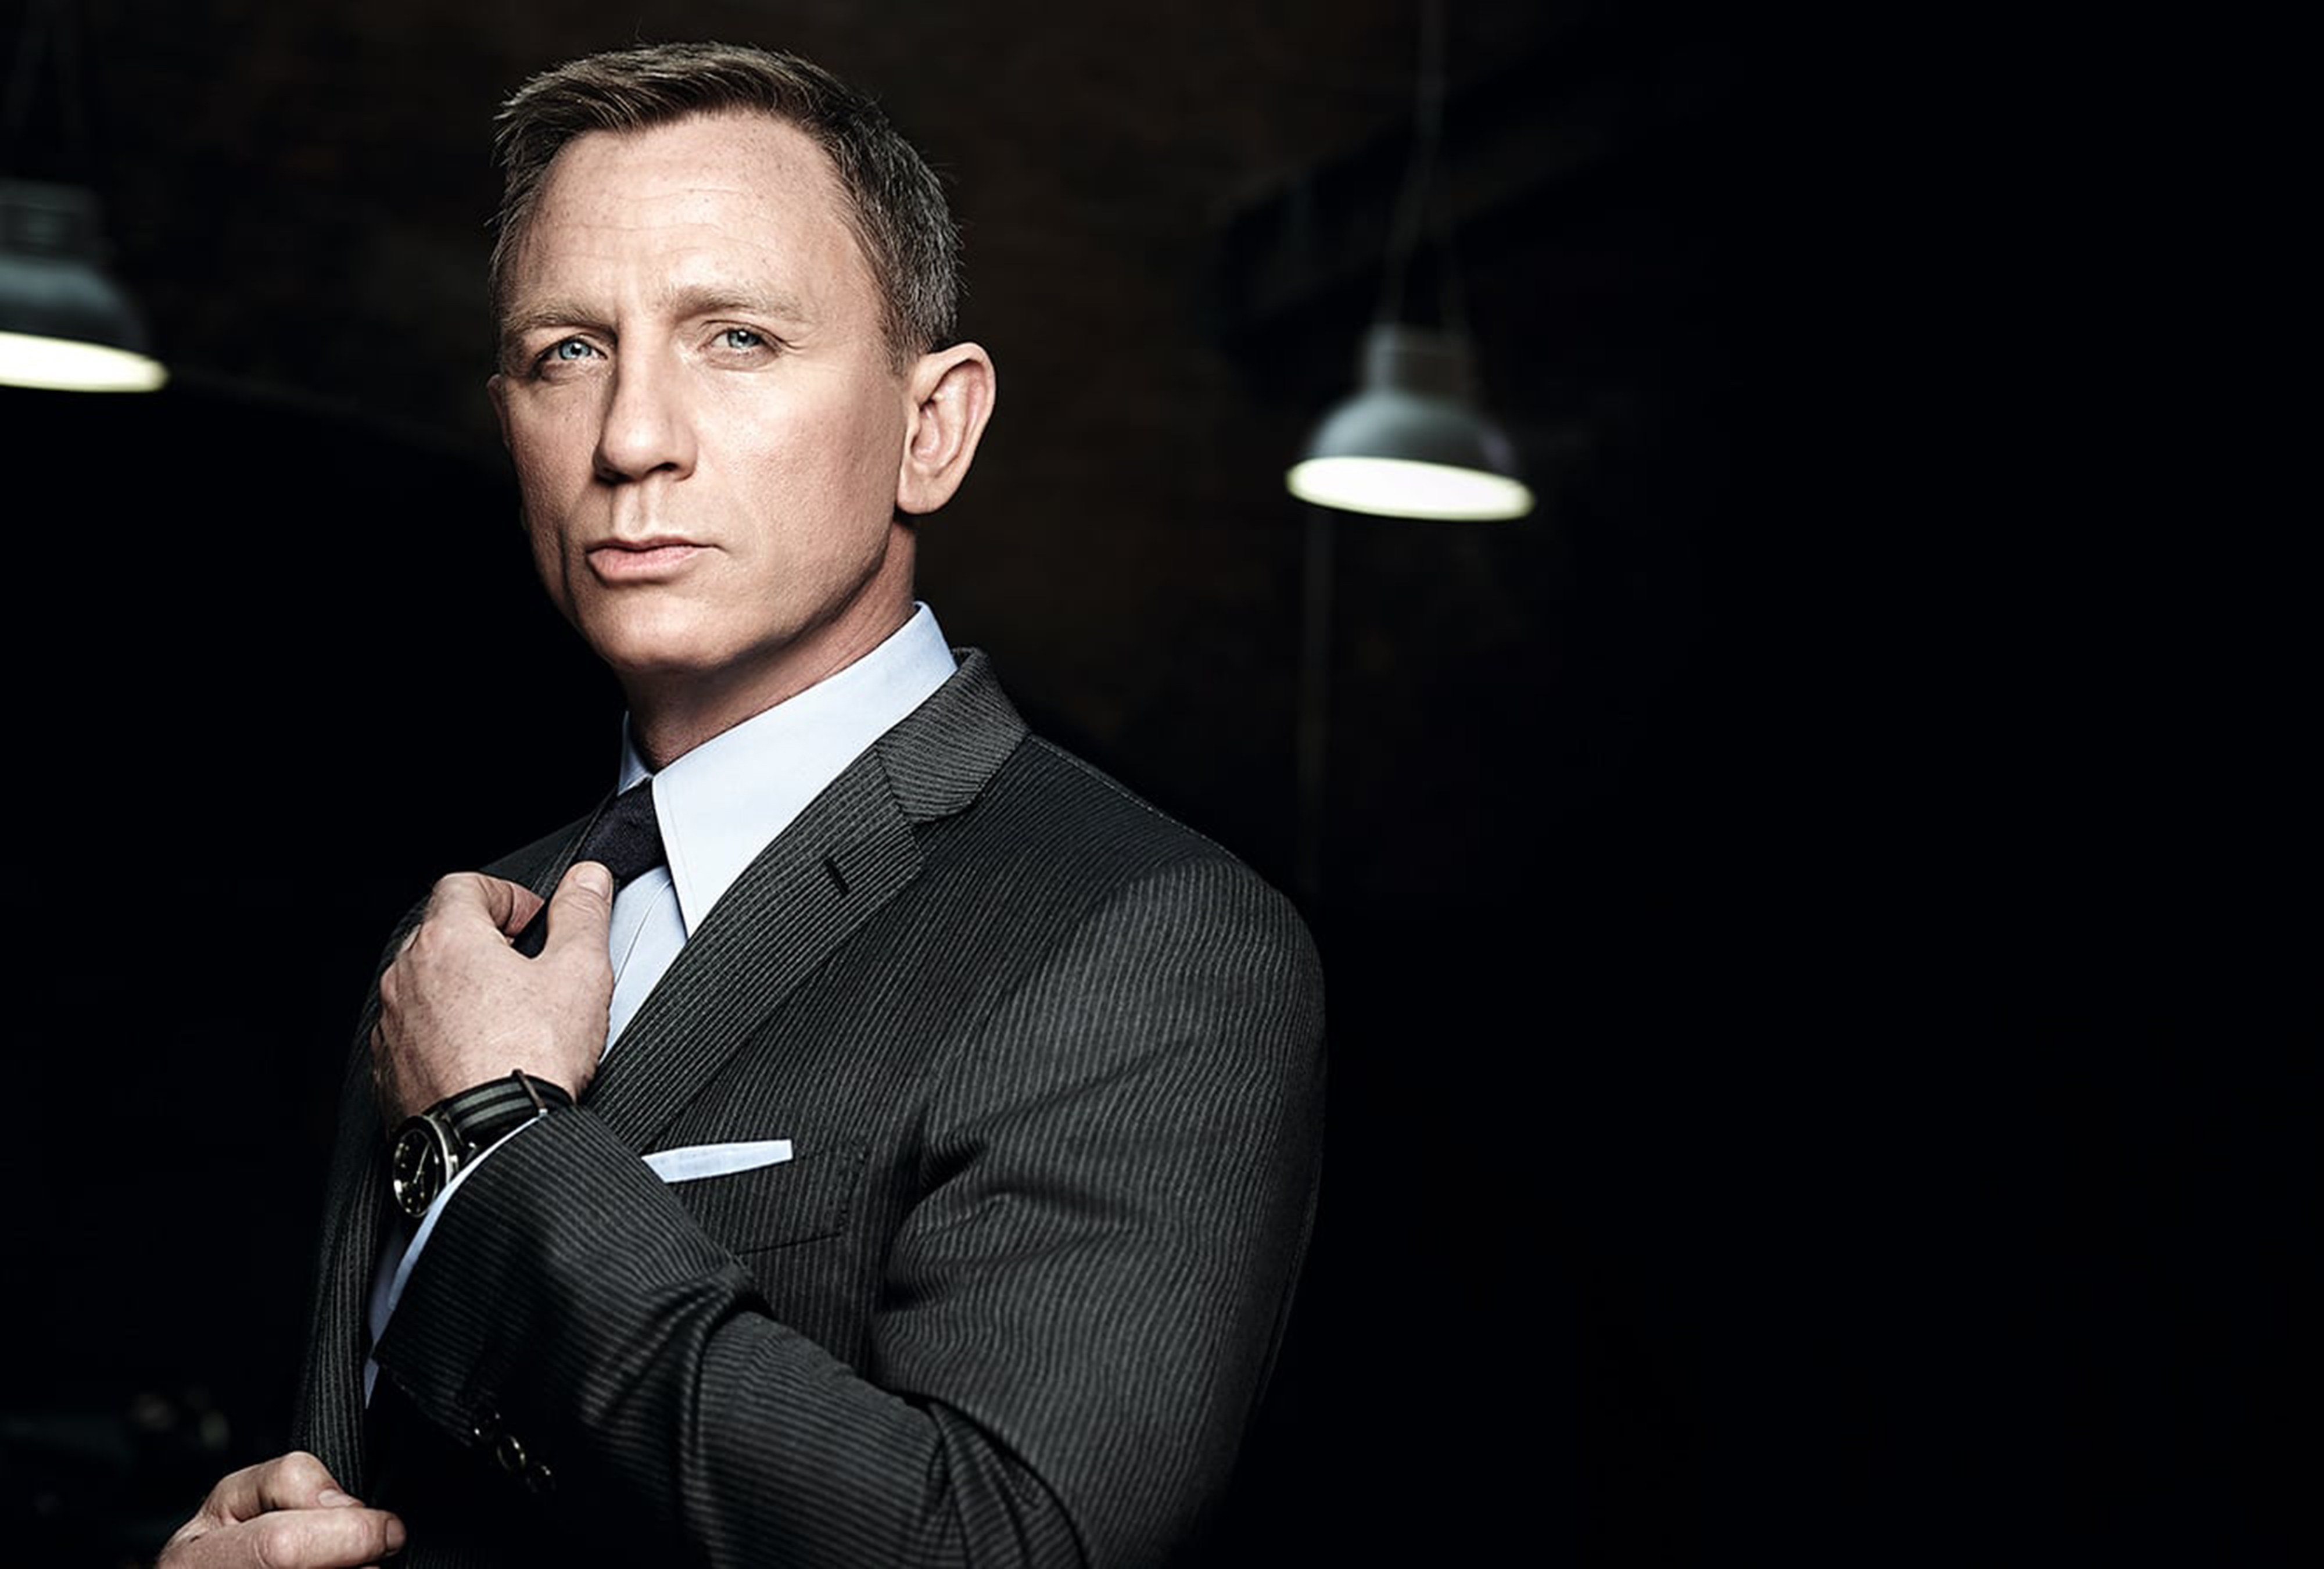 James Bond sequel, No Time To Die, was postponed due to the coronavirus outbreak